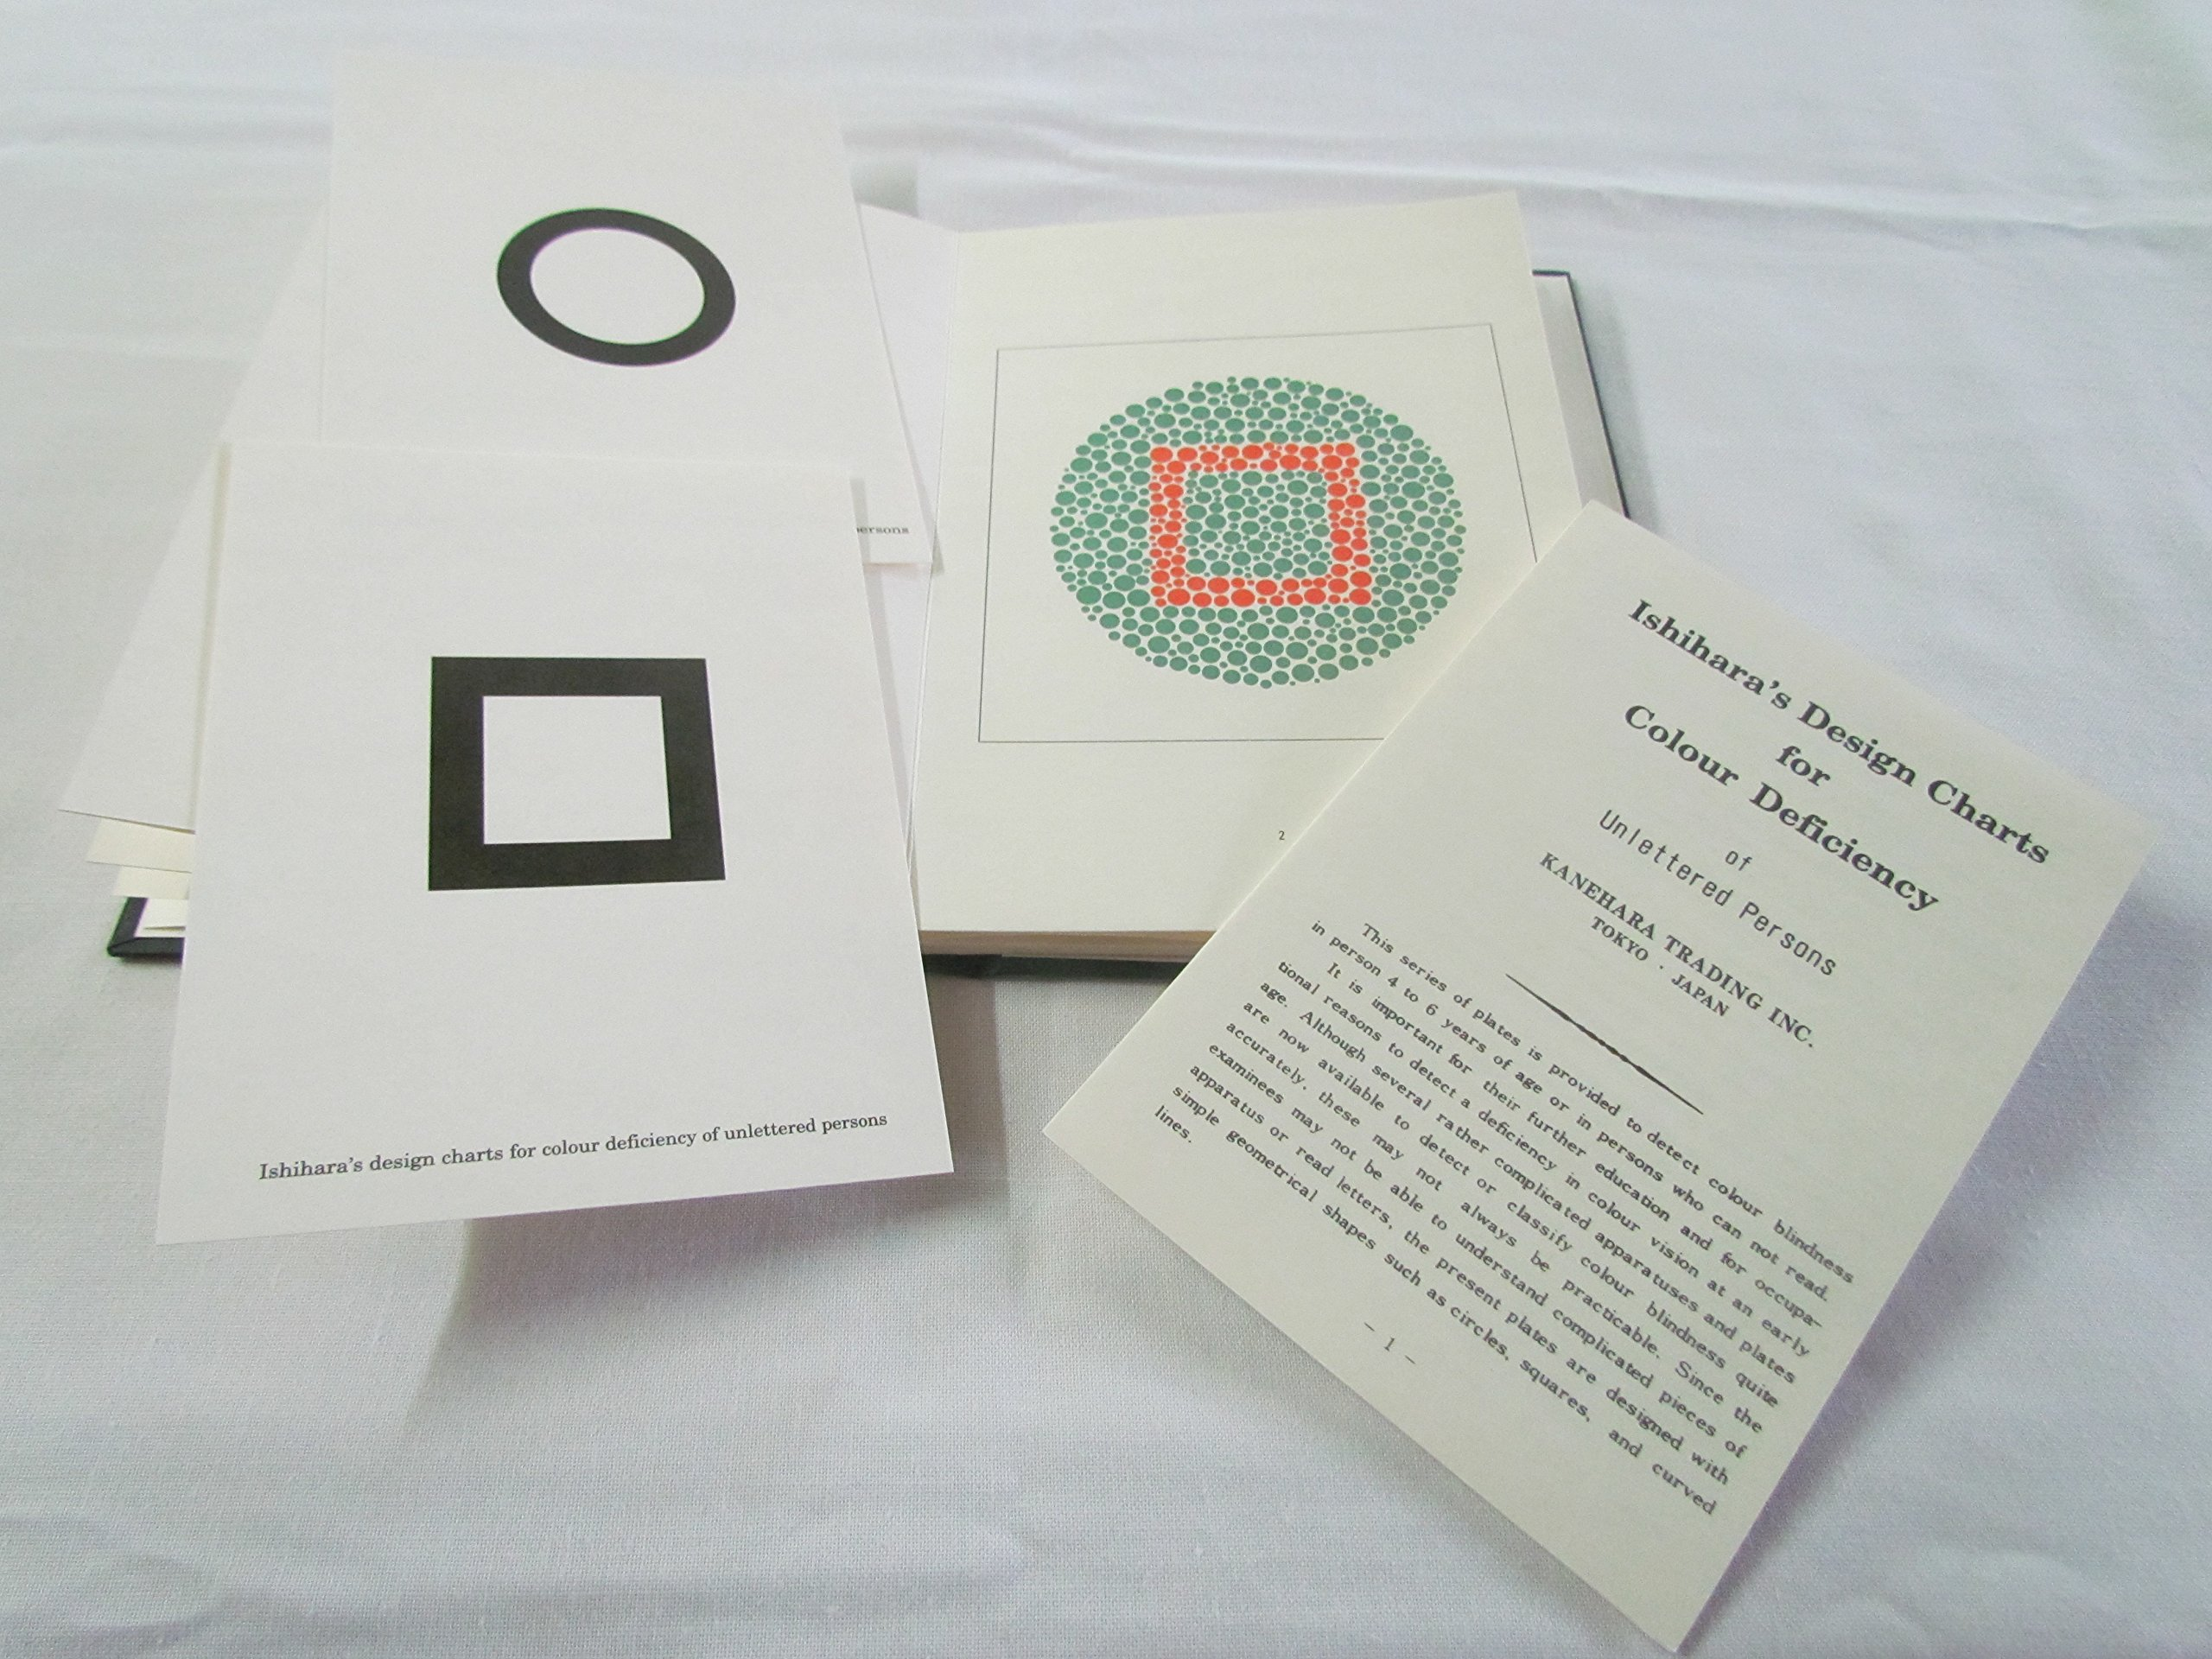 Kanehara Ishihara Test Chart Books, for Color Deficiency-10 Plate Book (Unlettered Persons & Children)